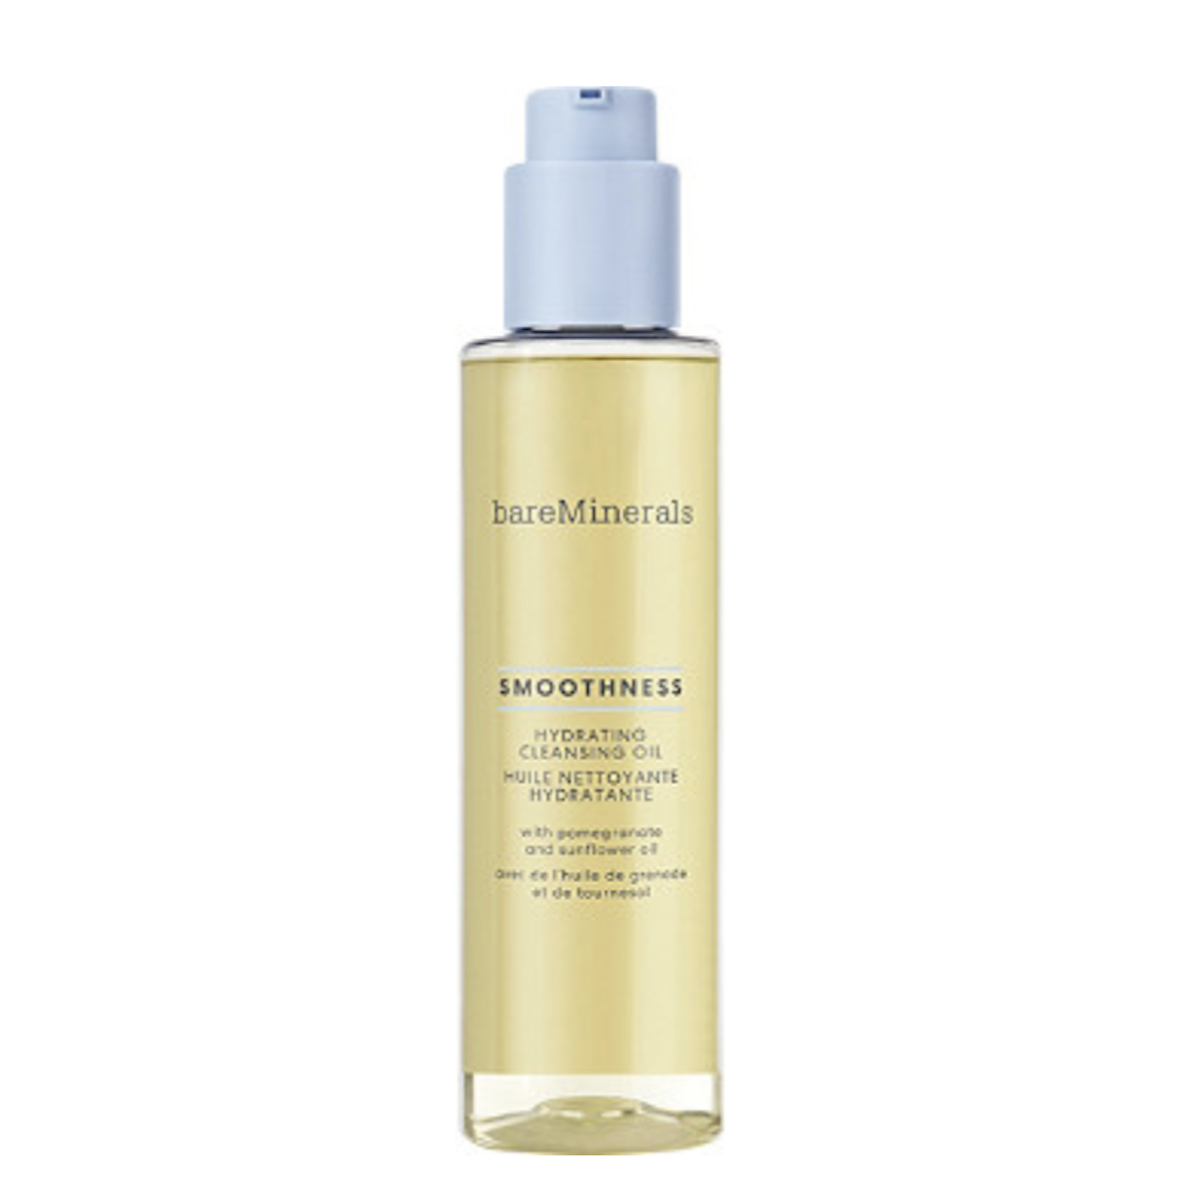 bareMinerals Smoothness Hydrating Oil Cleanser